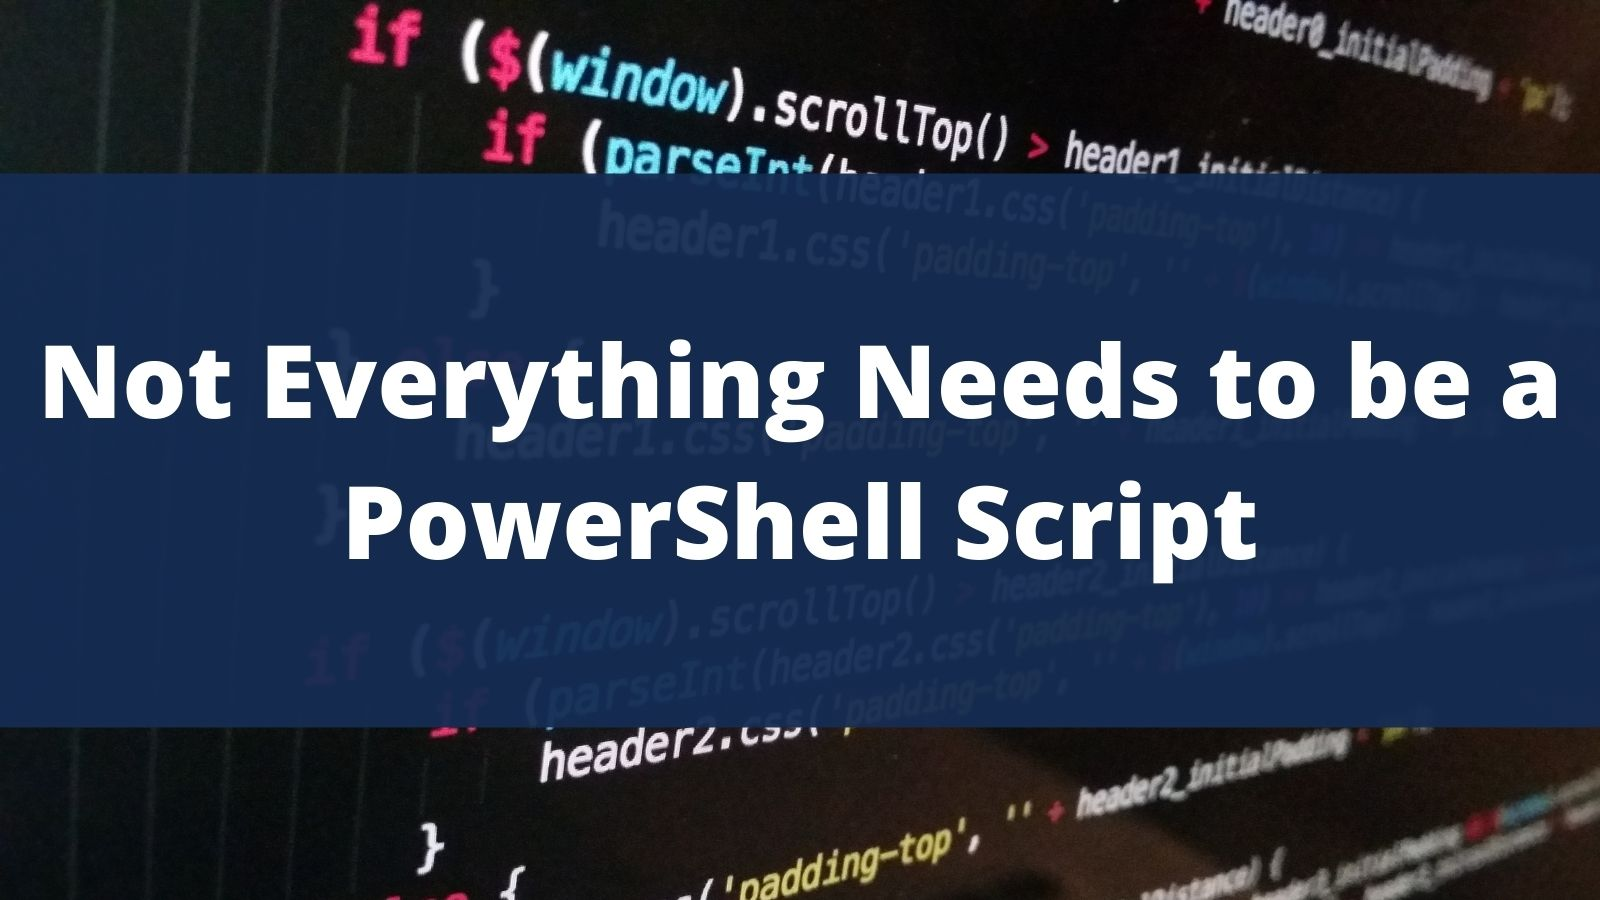 Not Everything Needs to be a PowerShell Script